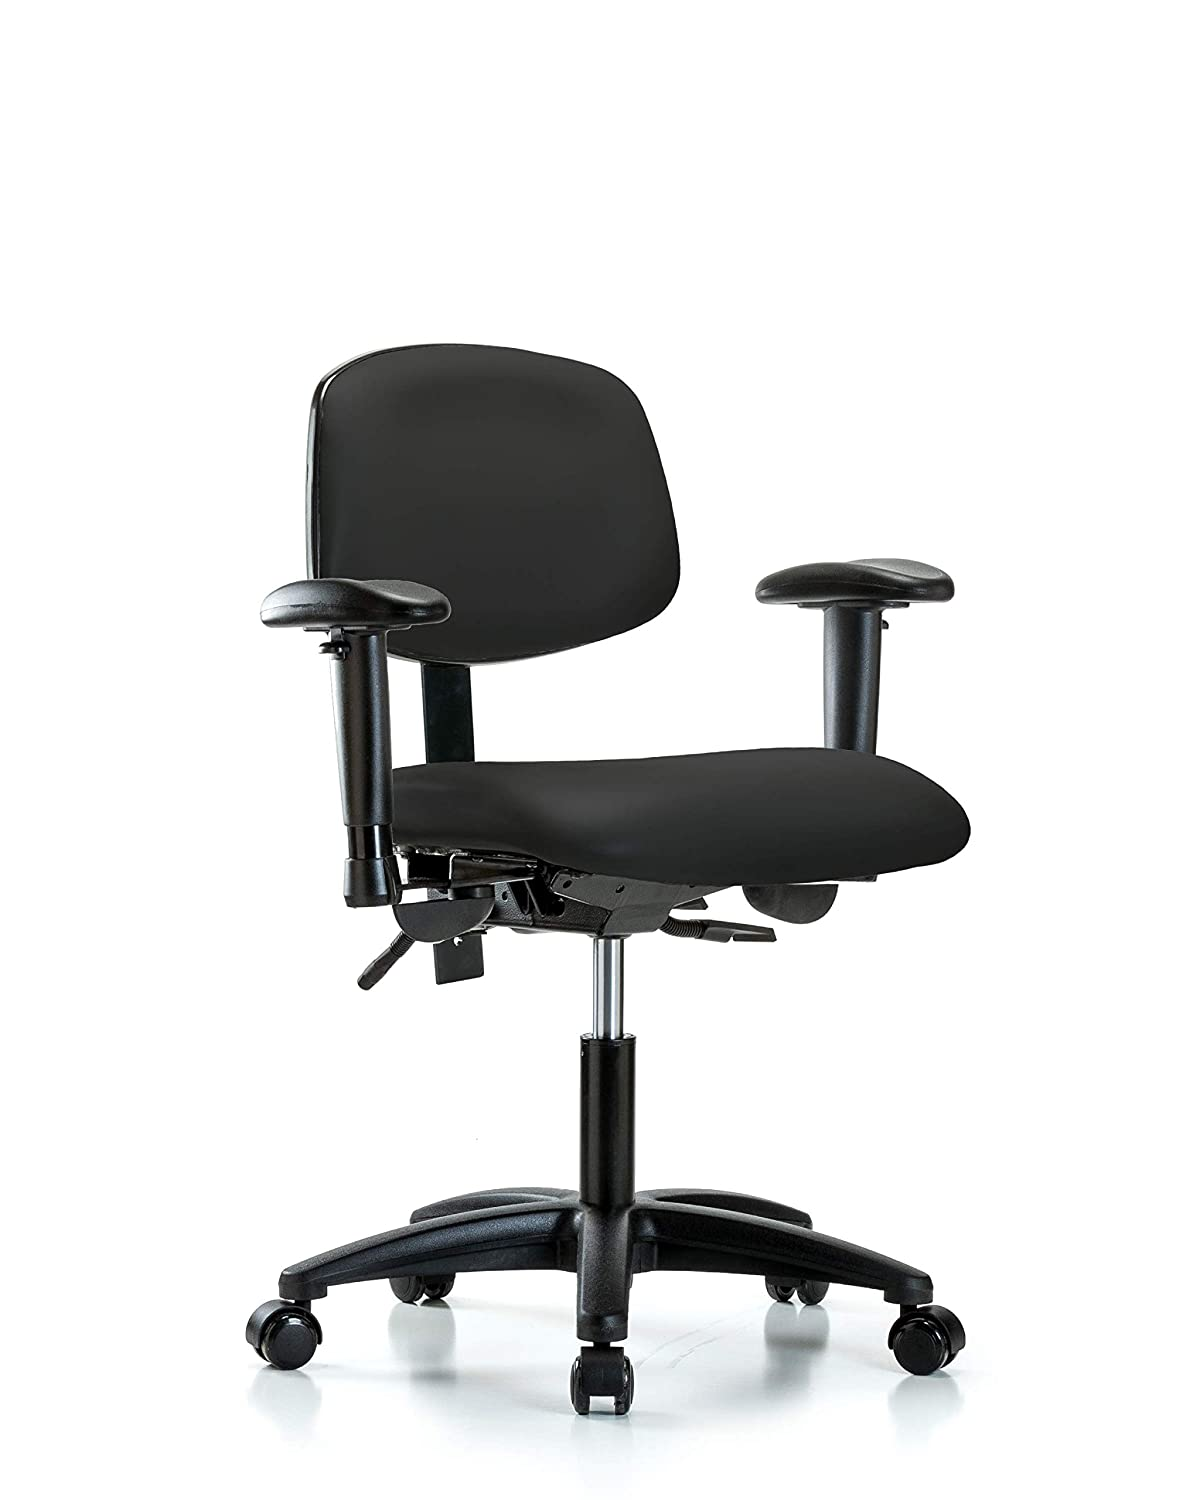 Vinyl Arms Casters Black LabTech Seating LT44223 Desk Height Chair Nylon Base